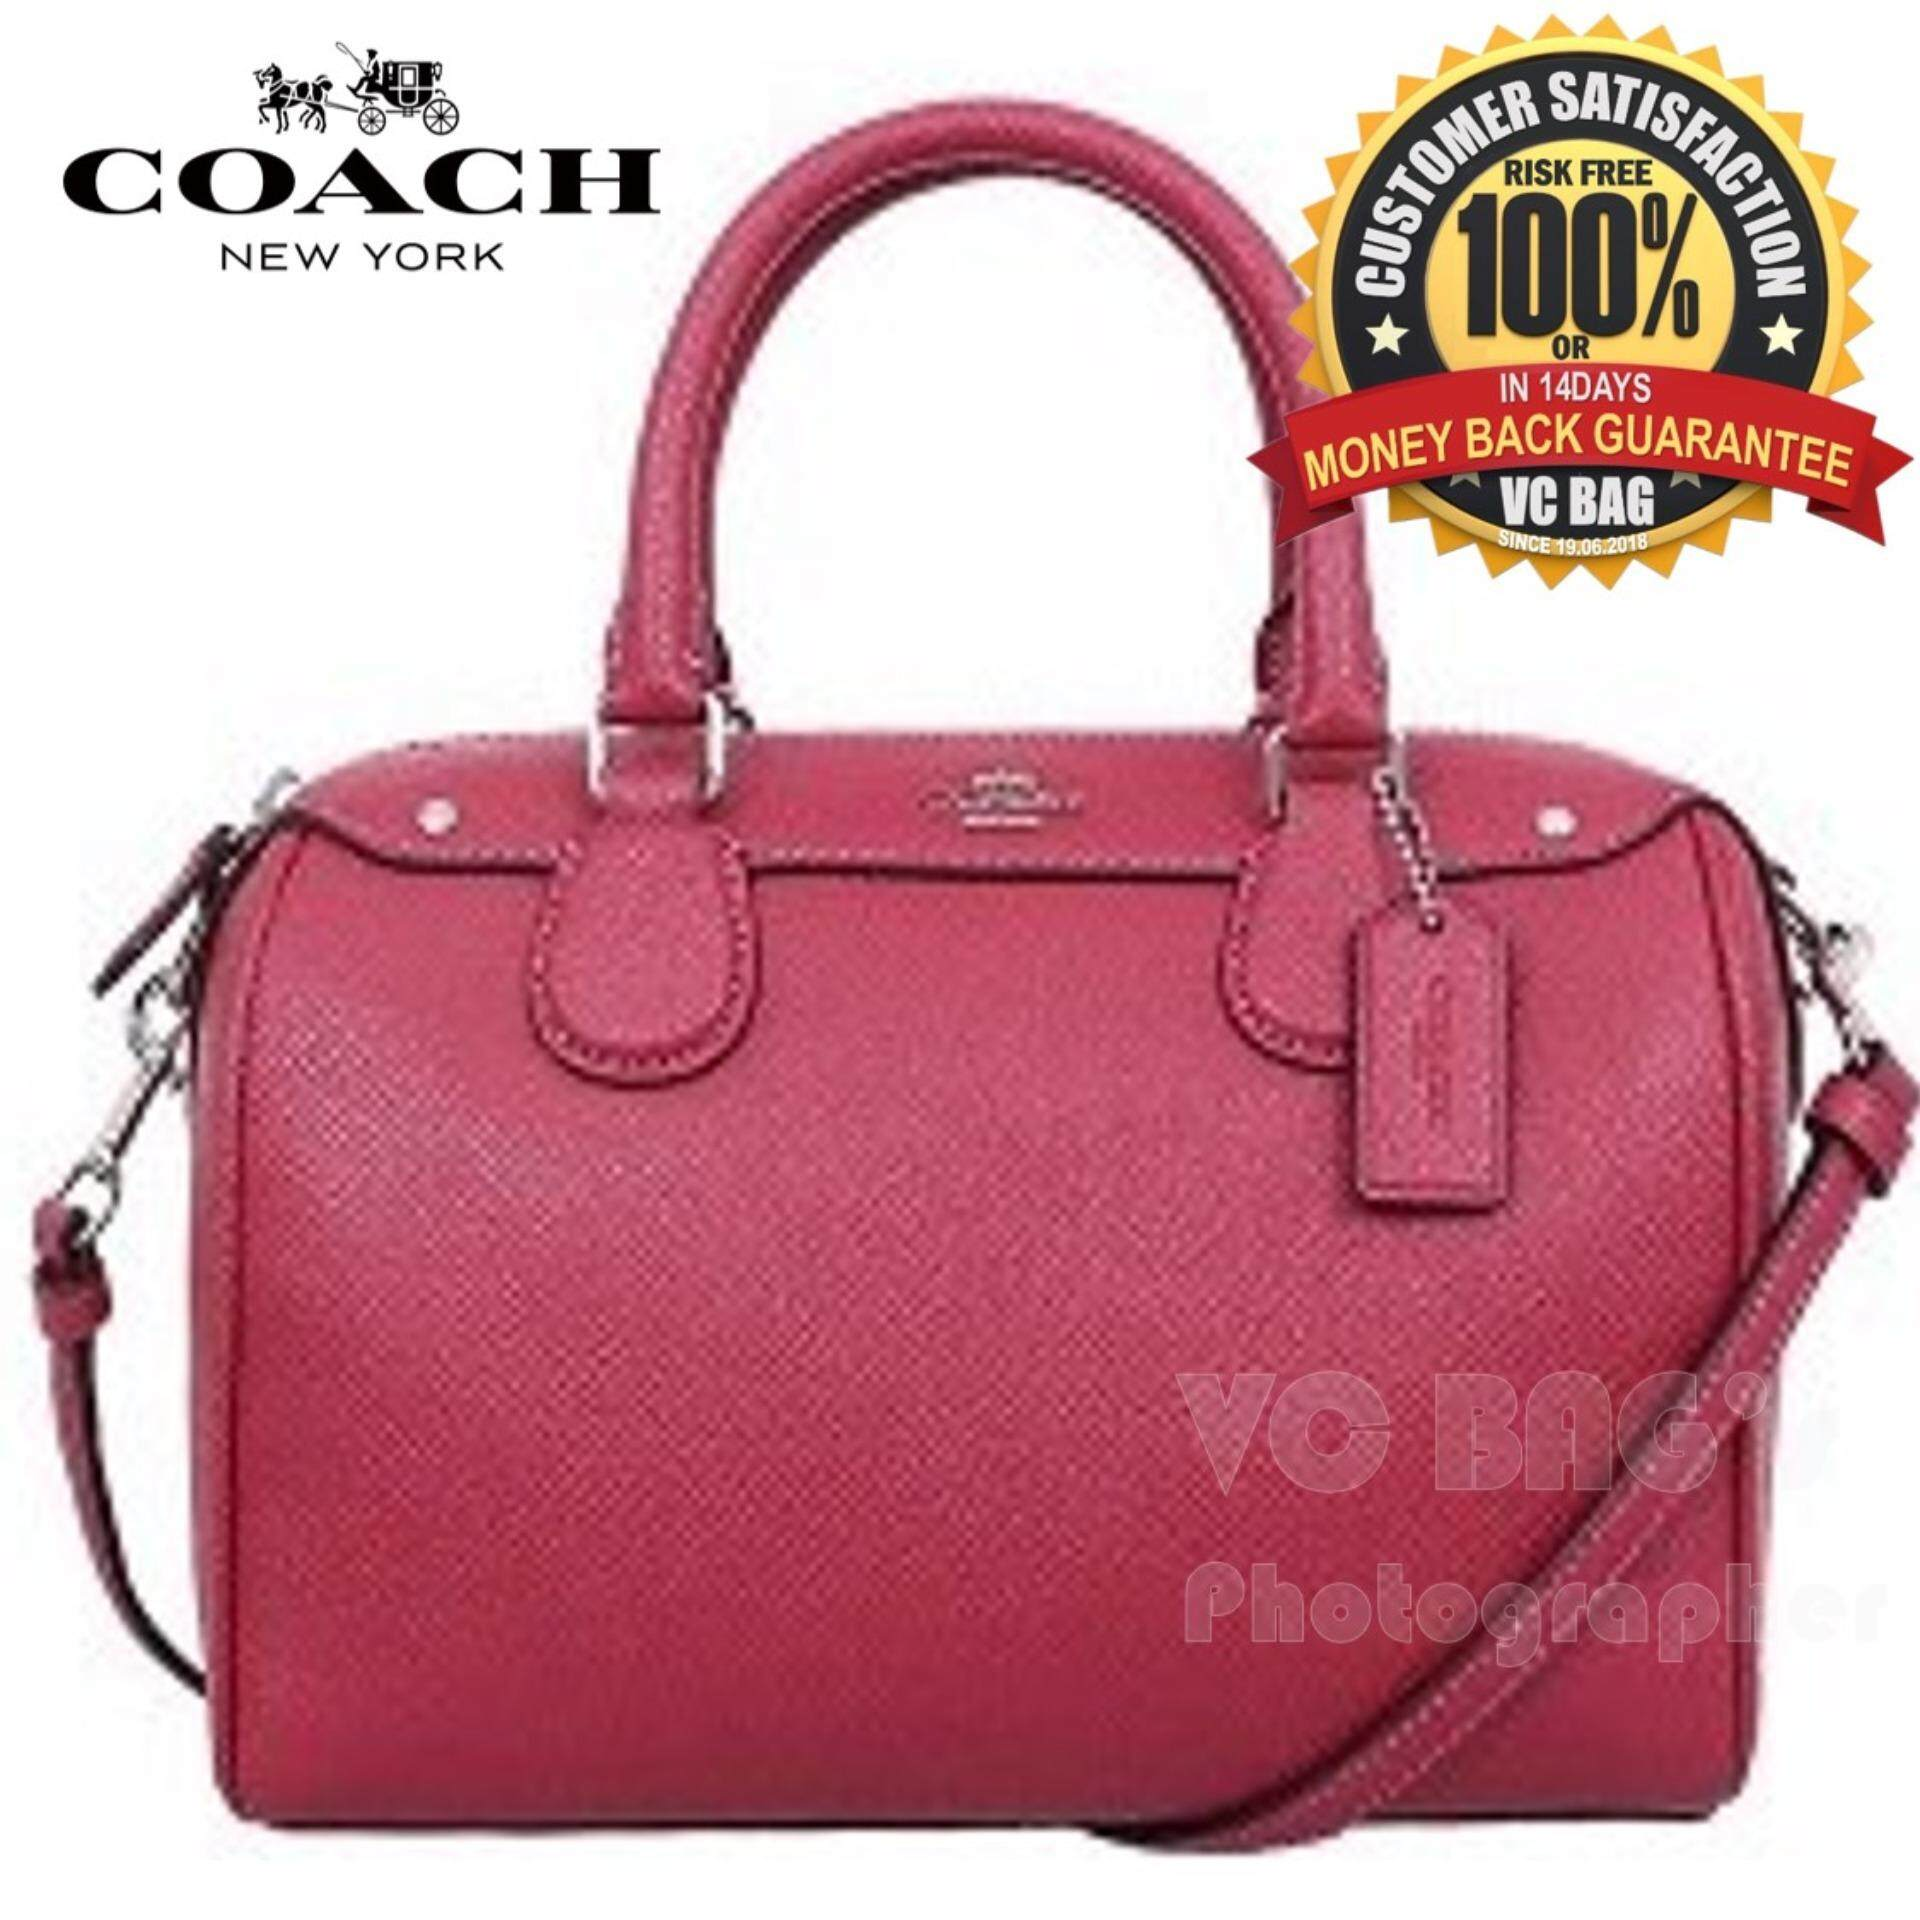 Coach Women Top Handle Bags Price In Malaysia Best Small Margot Carryall Signature Canvas F34608 F57521 Mini Bennet Satchel Crossgrain Leather Bag Silver Rouge